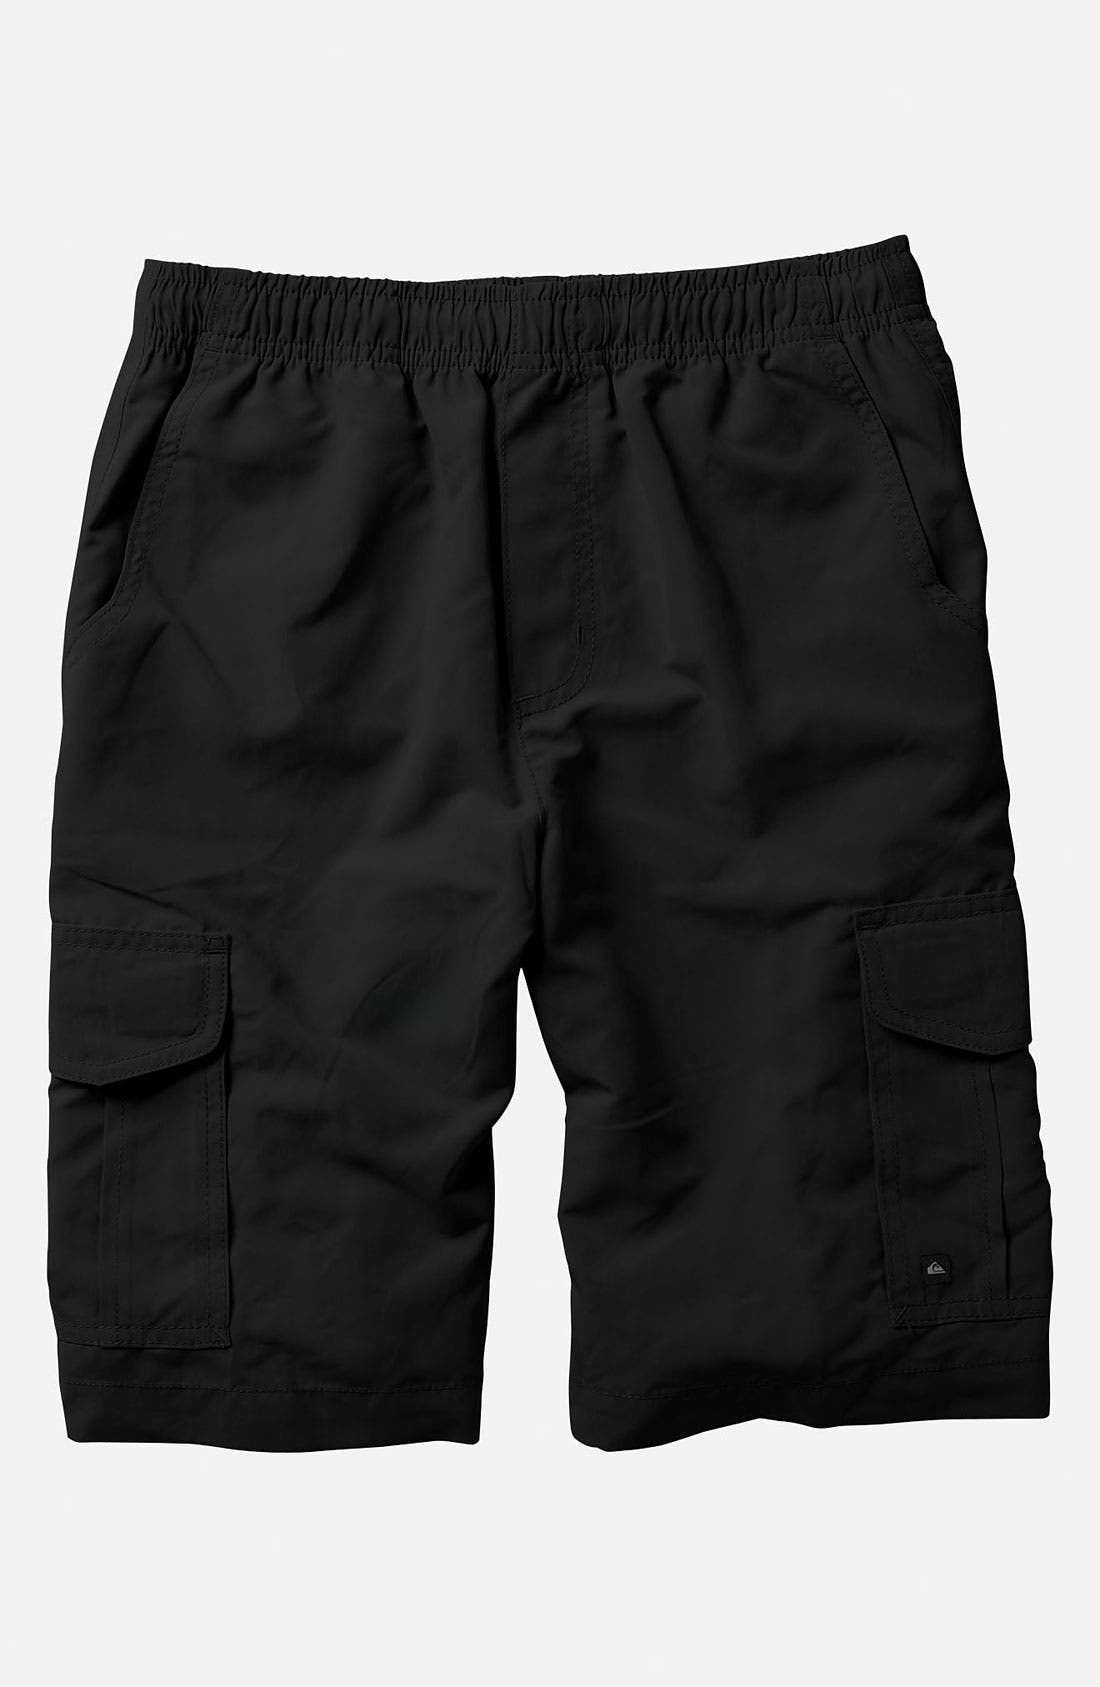 Quiksilver Toddler Boys Cargo Shorts Size 2T Brand New